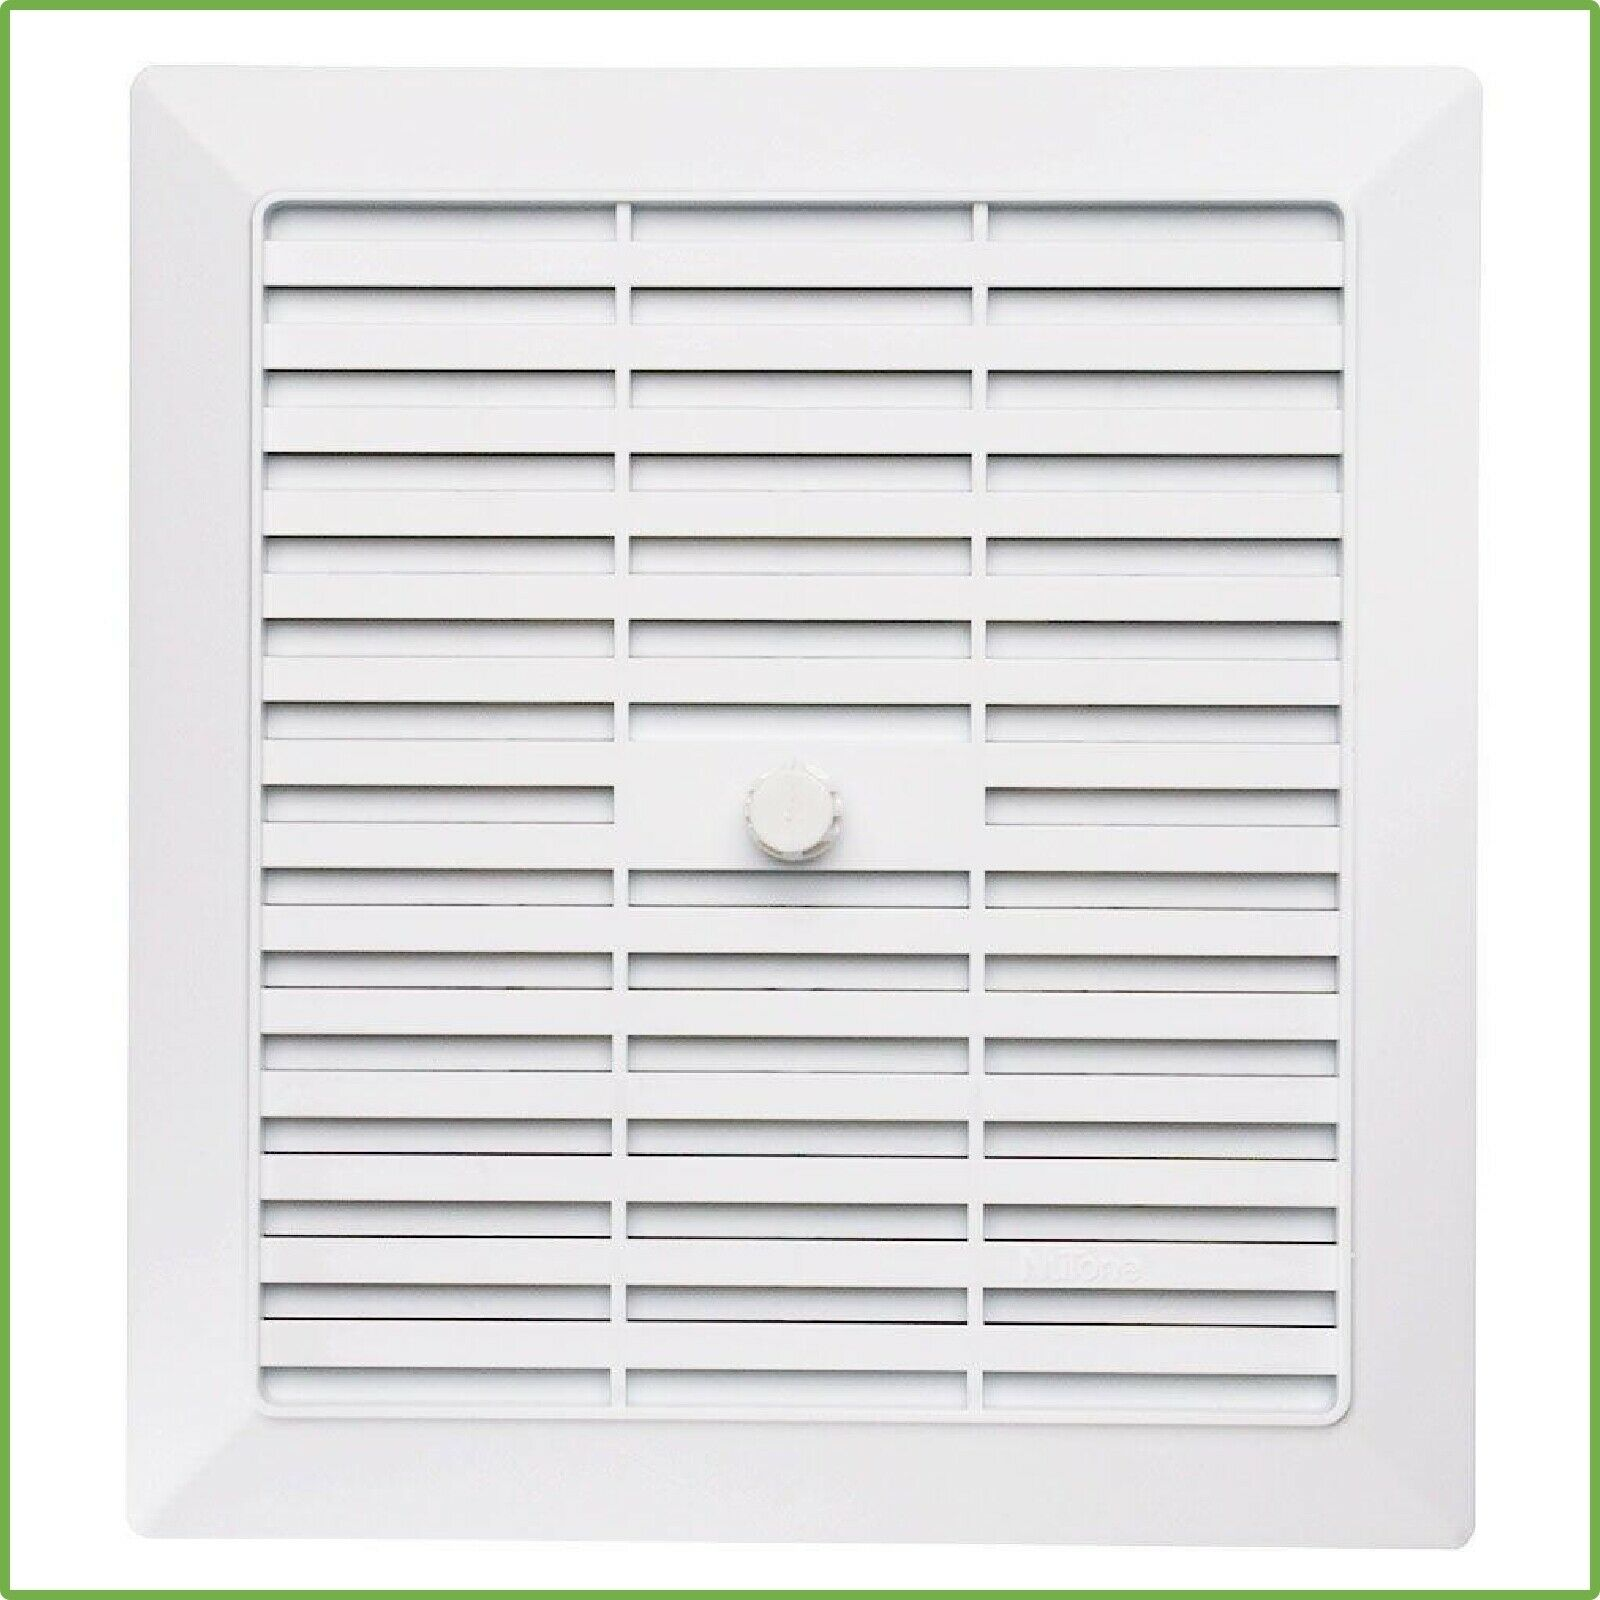 NuTone Replacement White Bathroom Vent Grille Cover for 686